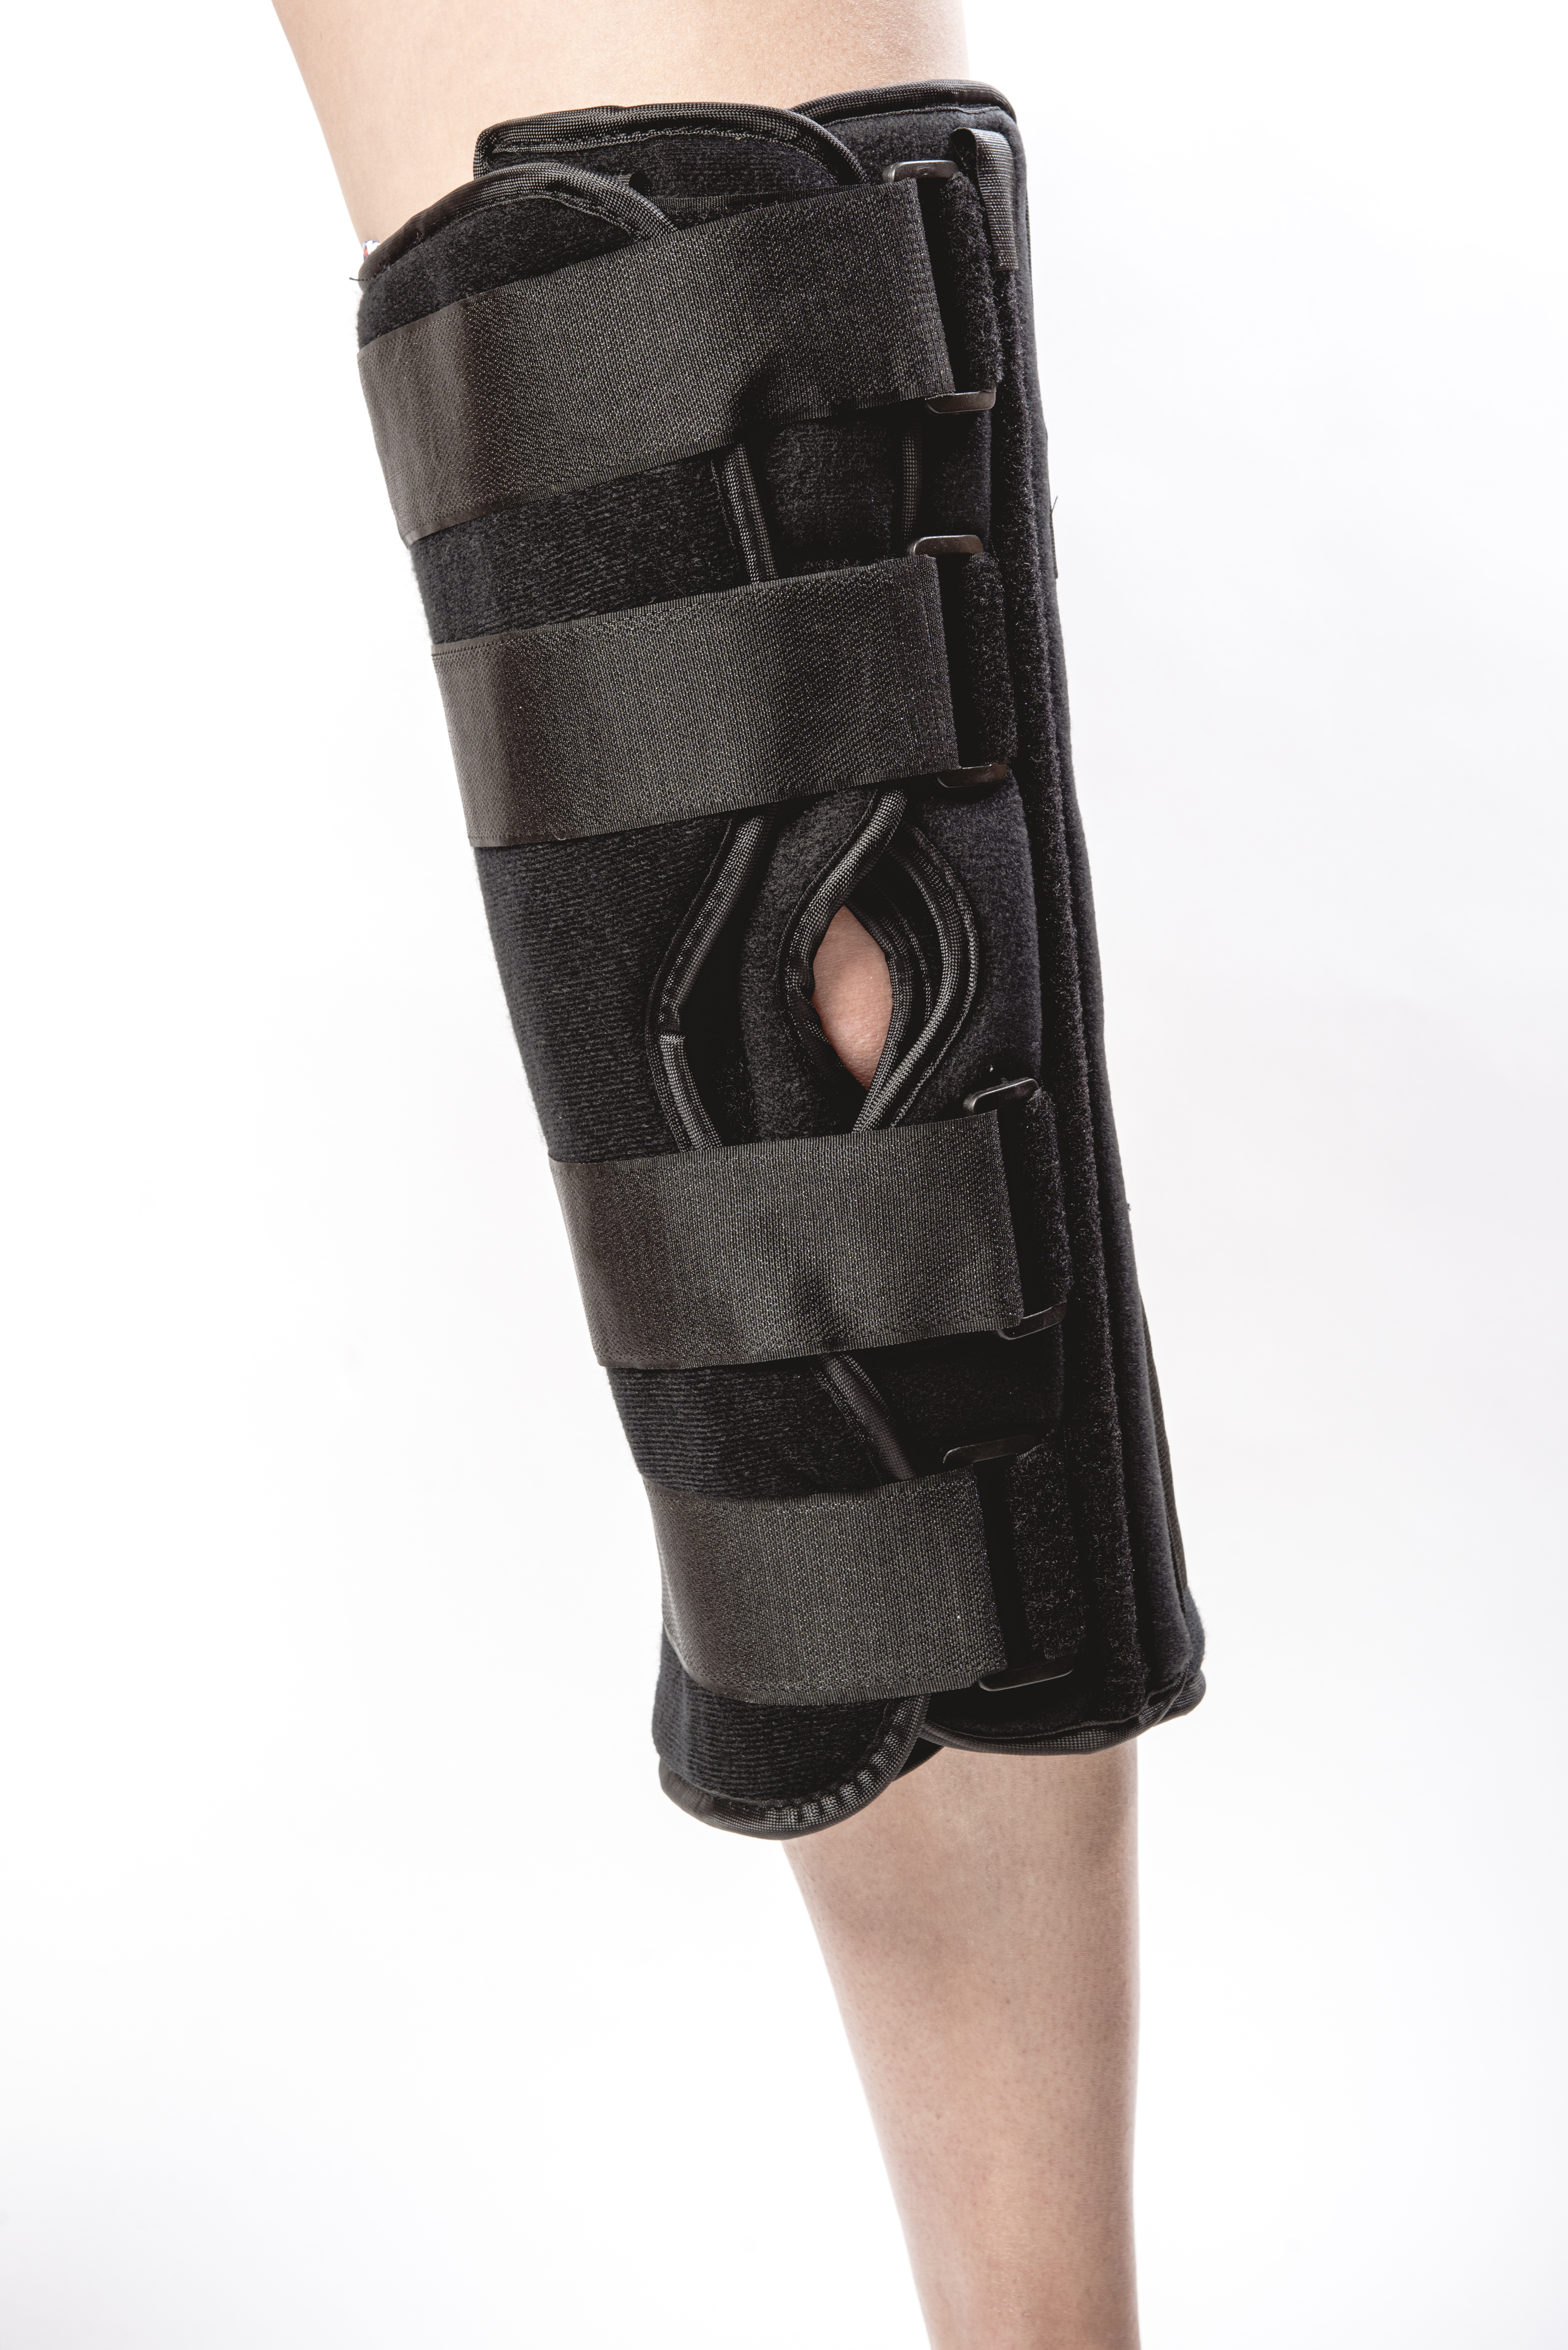 378cc12030 TRUE FIT THREE PANEL KNEE IMMOBILIZER - Doctor's Choice